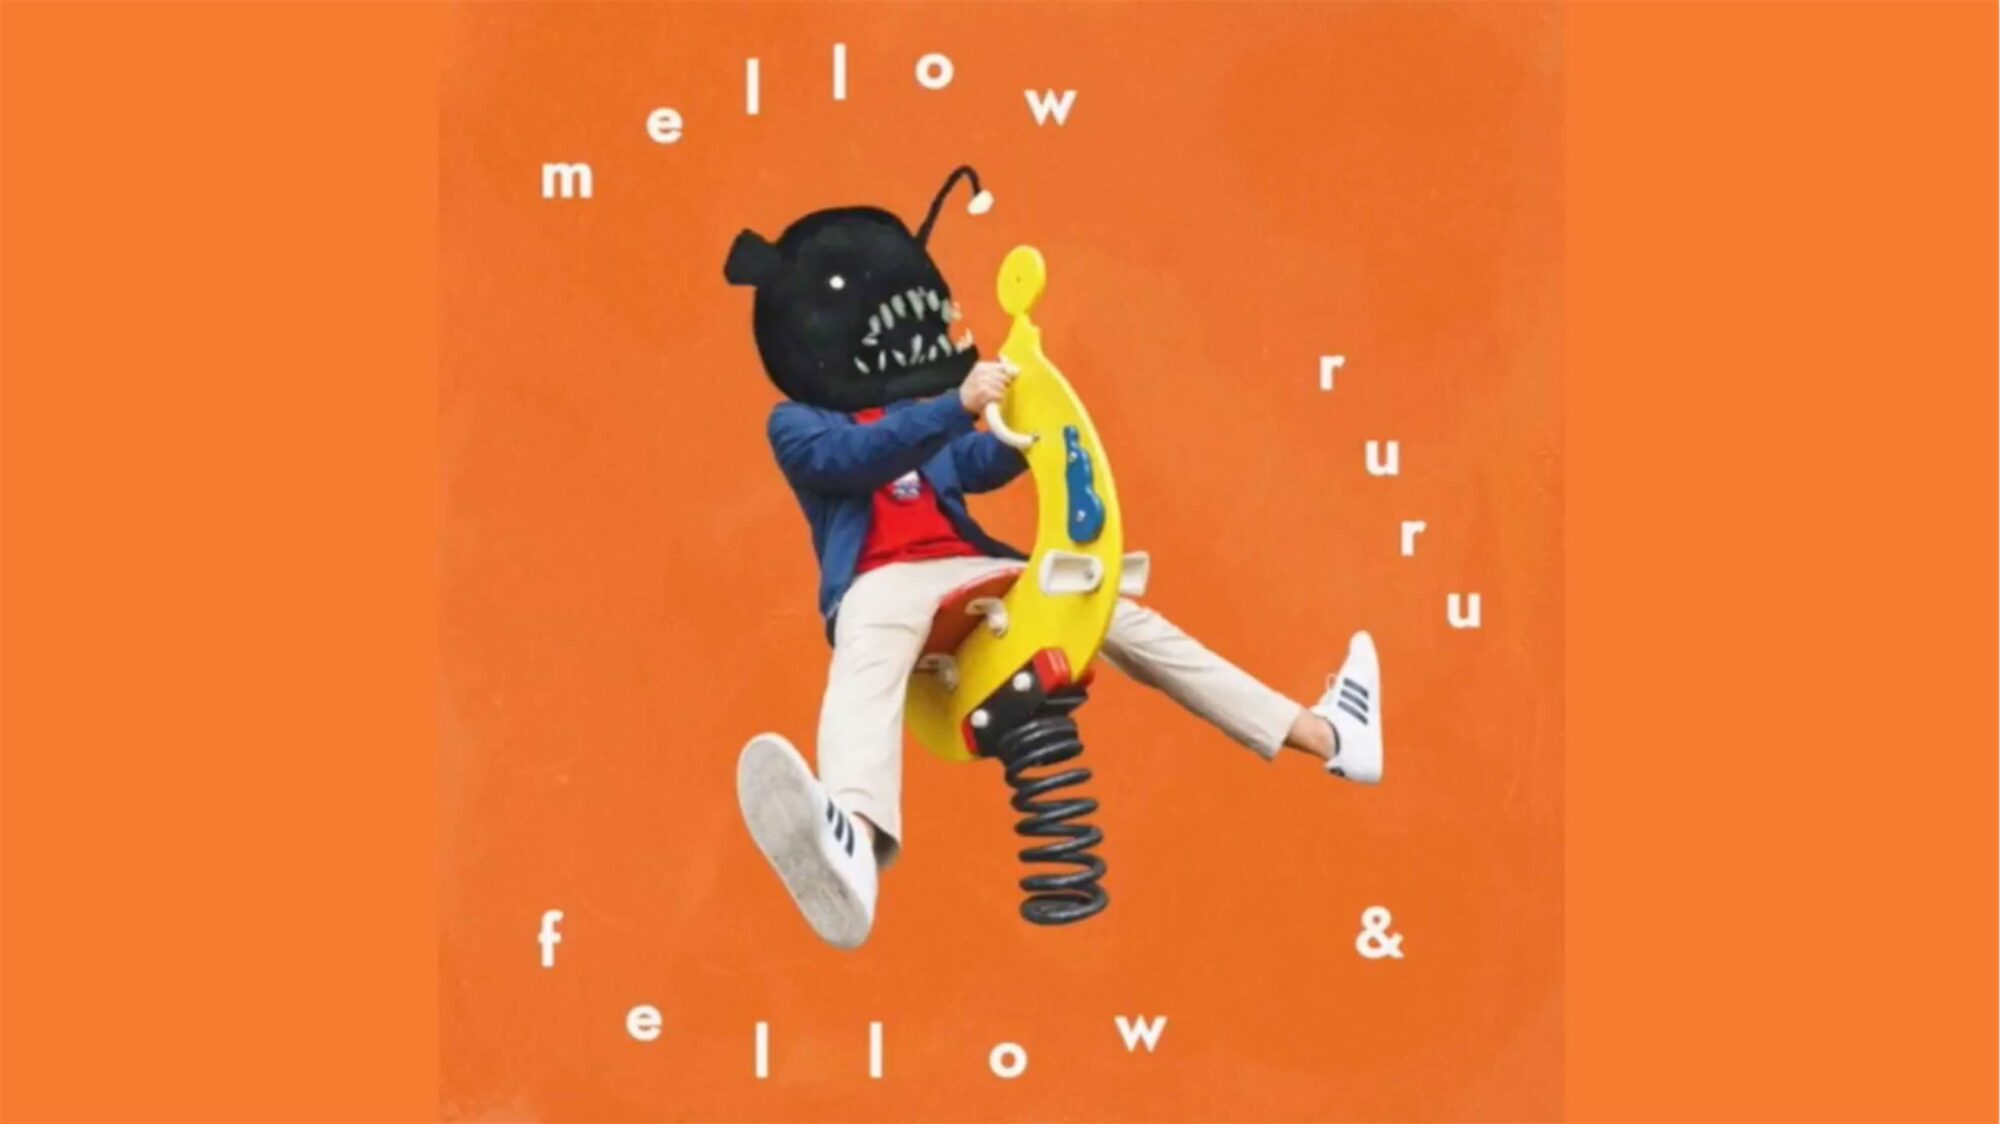 ruru mellow fellow its okay to dream streaming